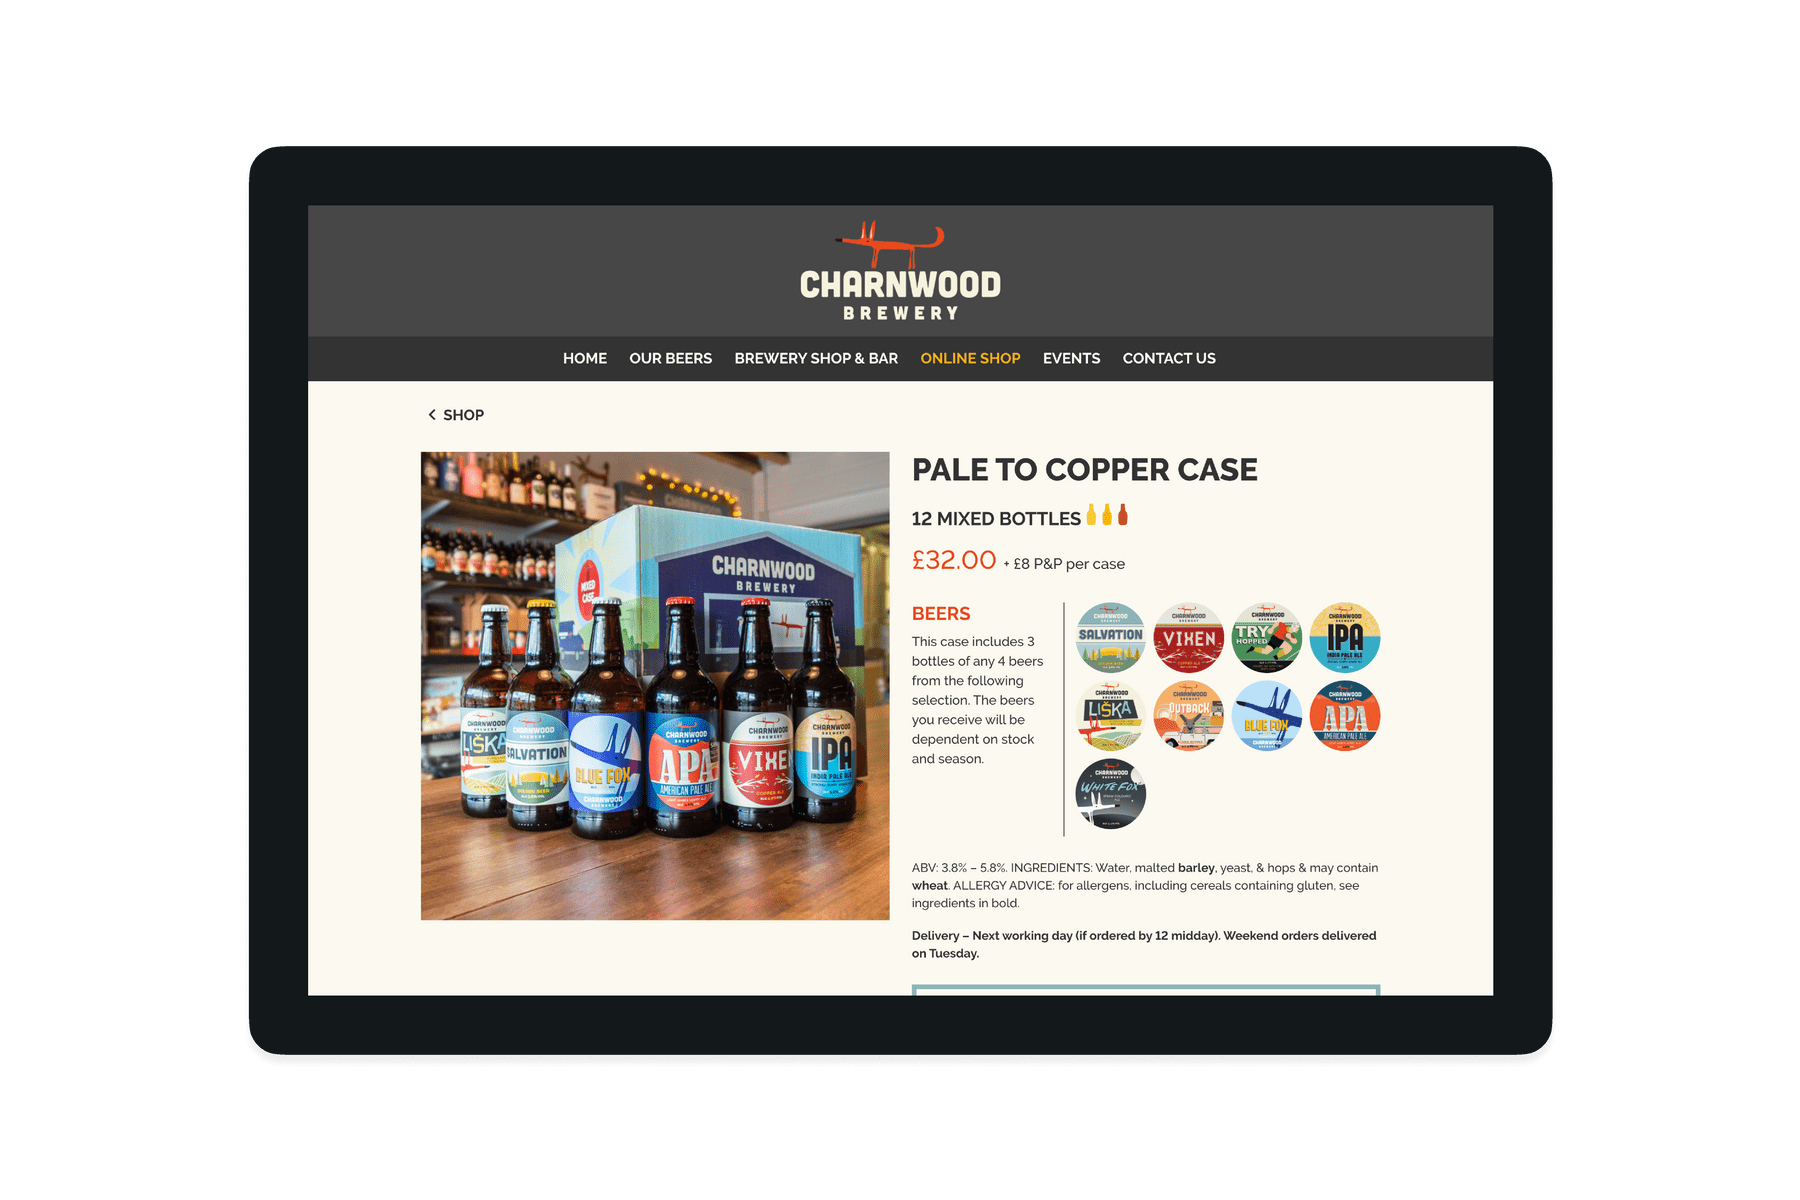 A Charnwood Brewery product page showing a case of pale to copper beers